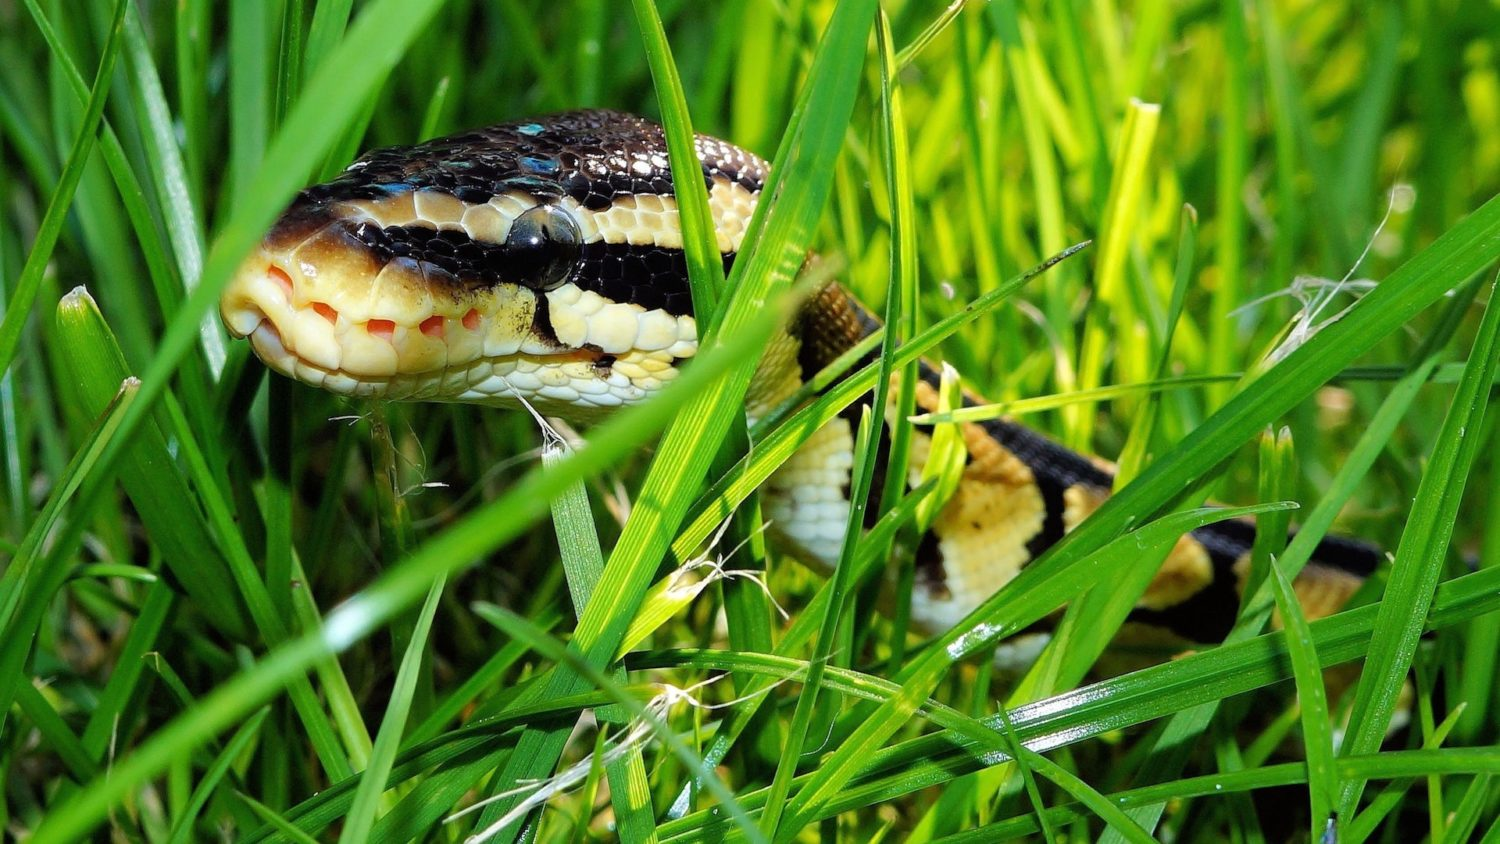 snake removal service in South Florida